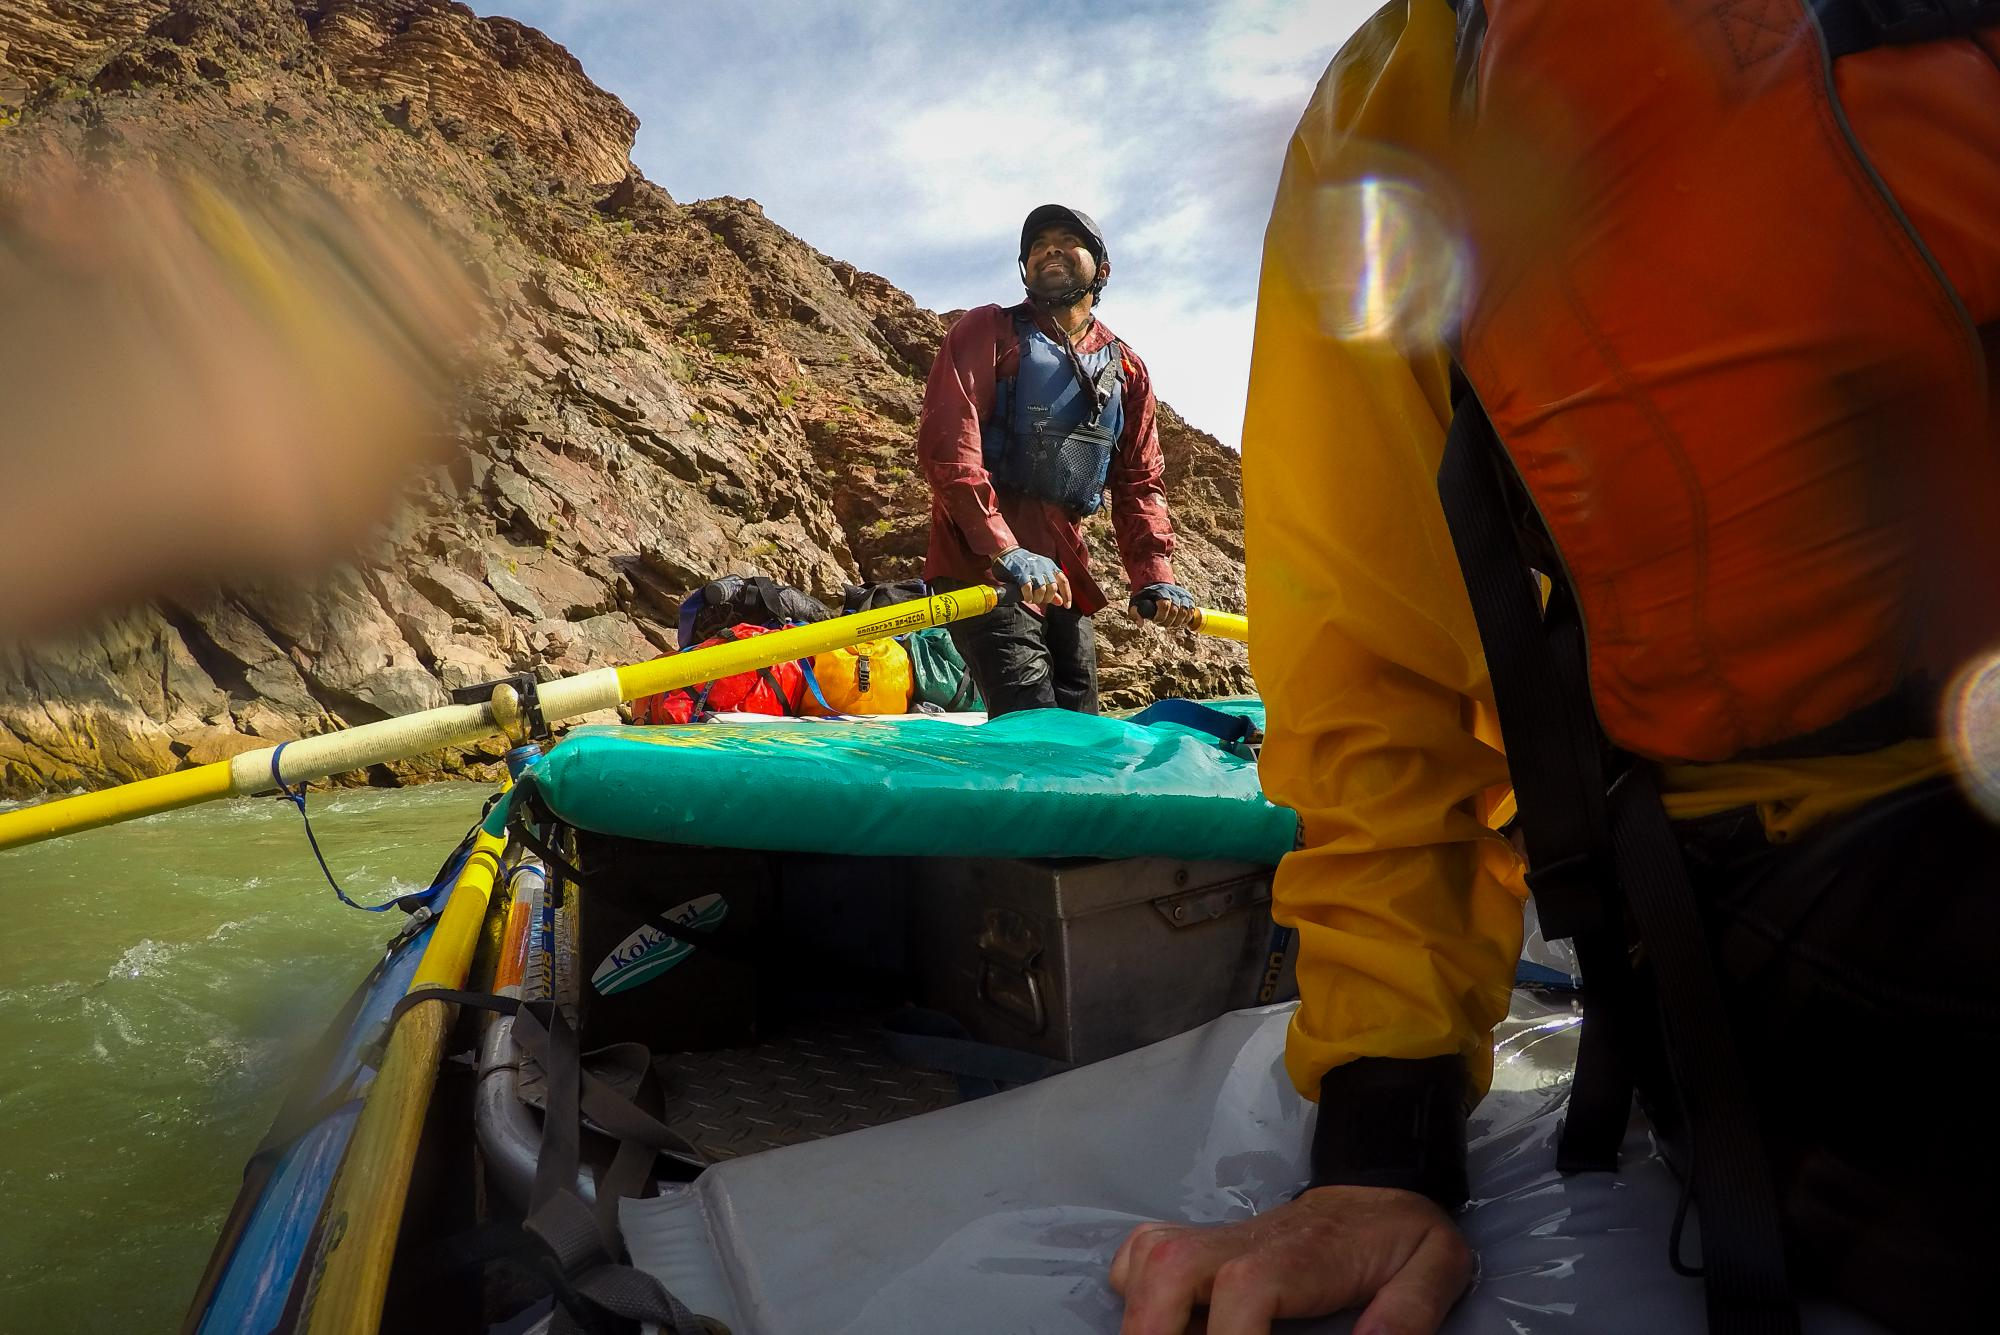 River guide rows raft on Colorado River in Grand Canyon